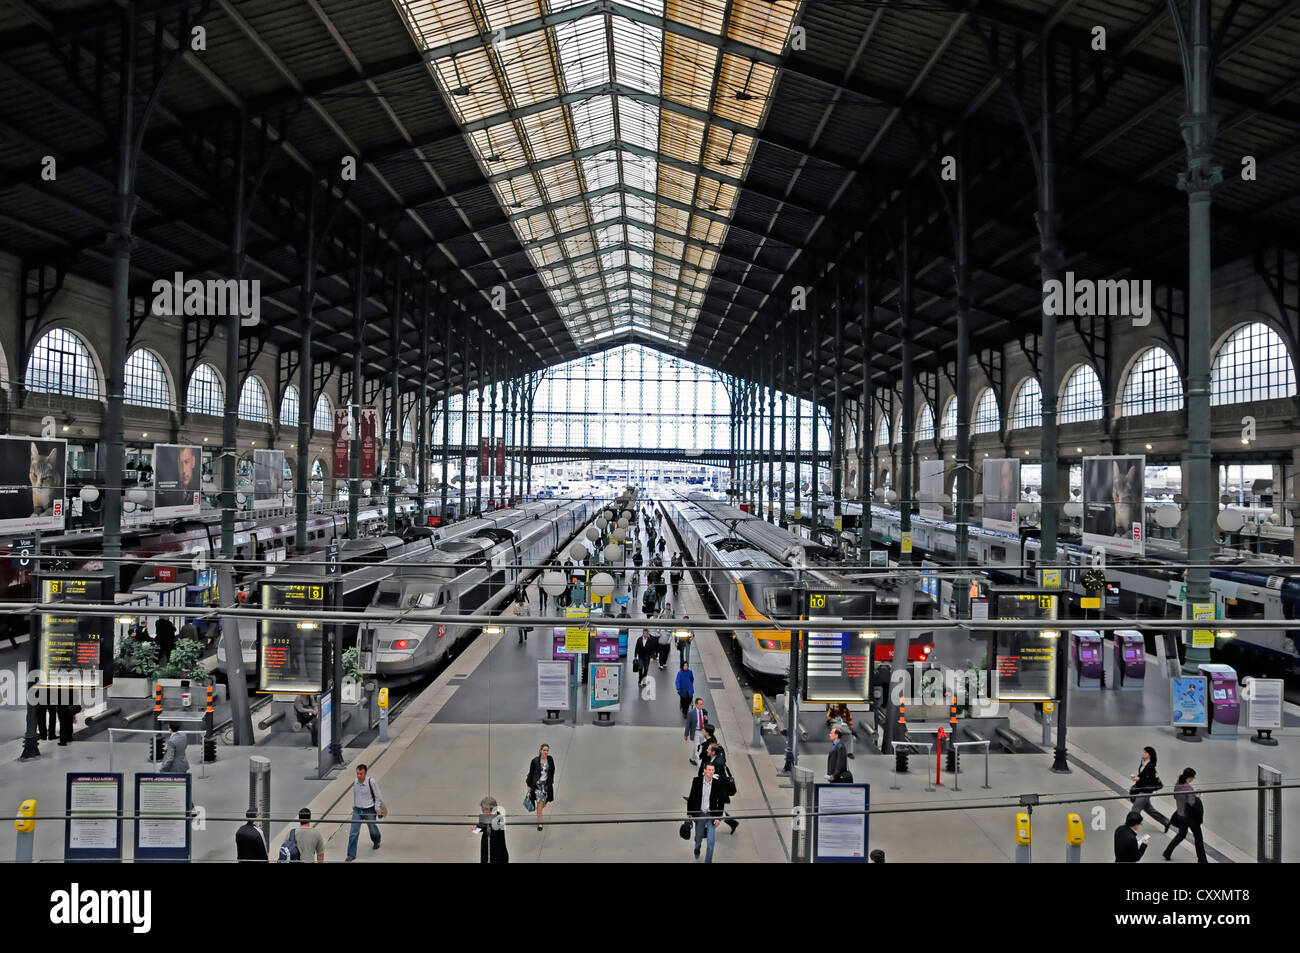 station hall gare du nord train station north station paris stock photo royalty free image. Black Bedroom Furniture Sets. Home Design Ideas